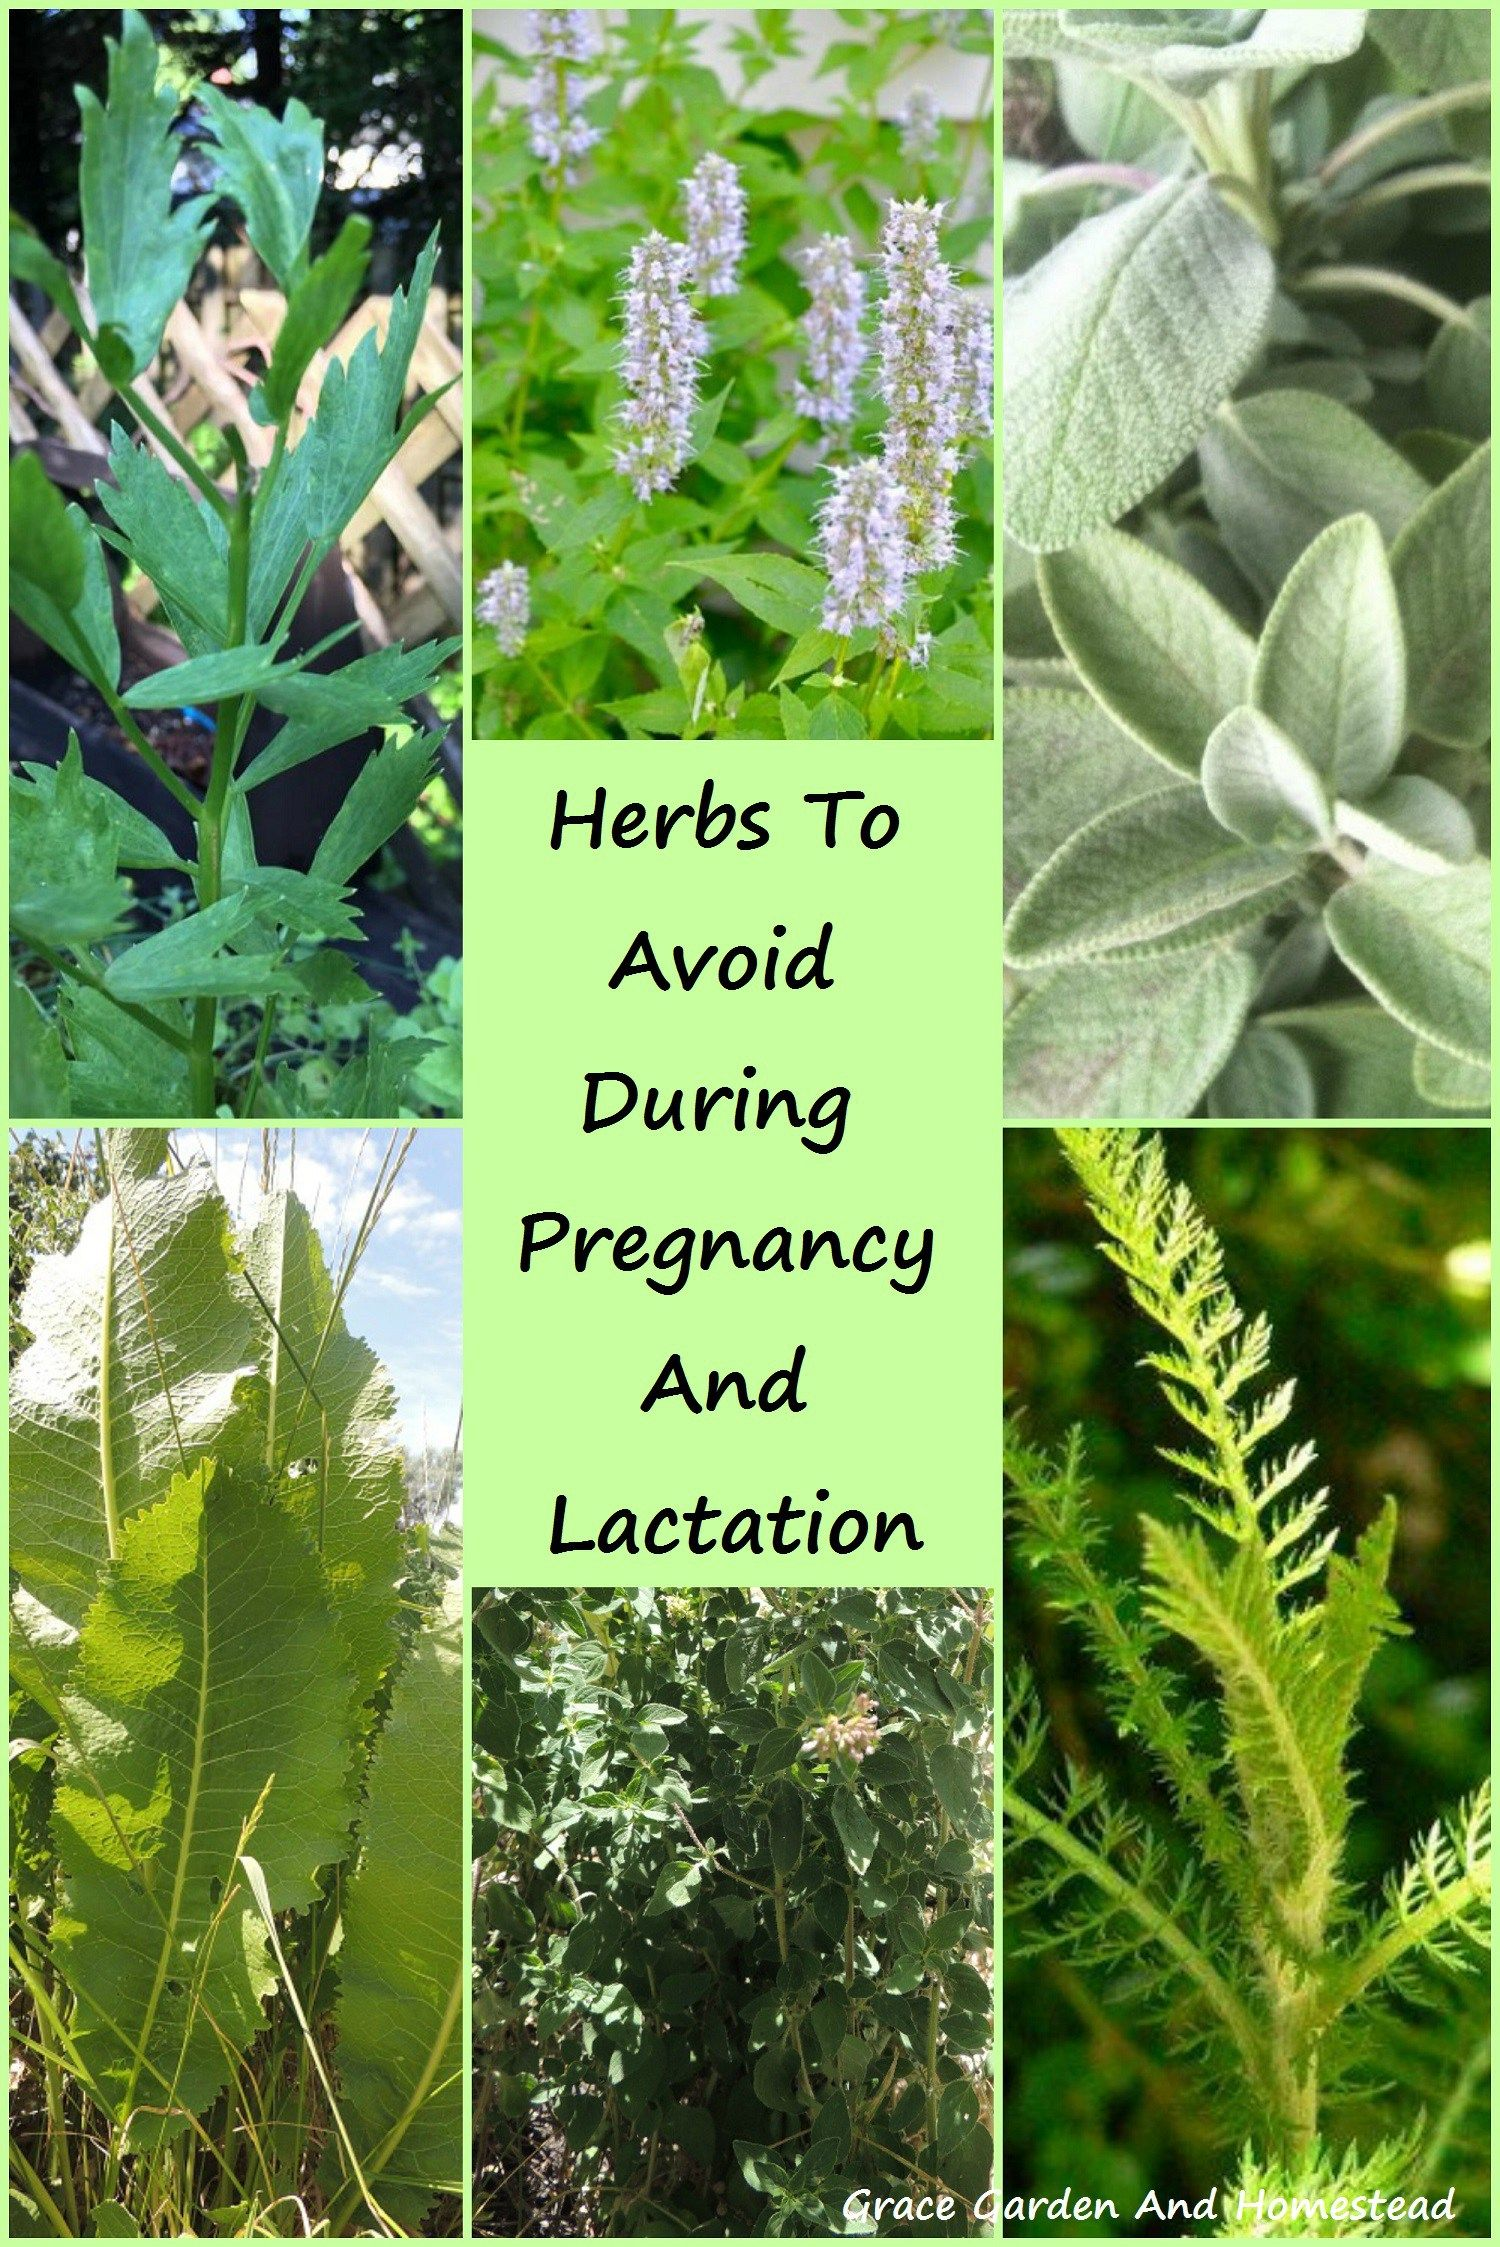 Herbs have a wide range of uses from flavoring foods to treating ailments. But many should be avoided during pregnancy and lactation. Here are a list of common herbs to avoid during pregnancy.